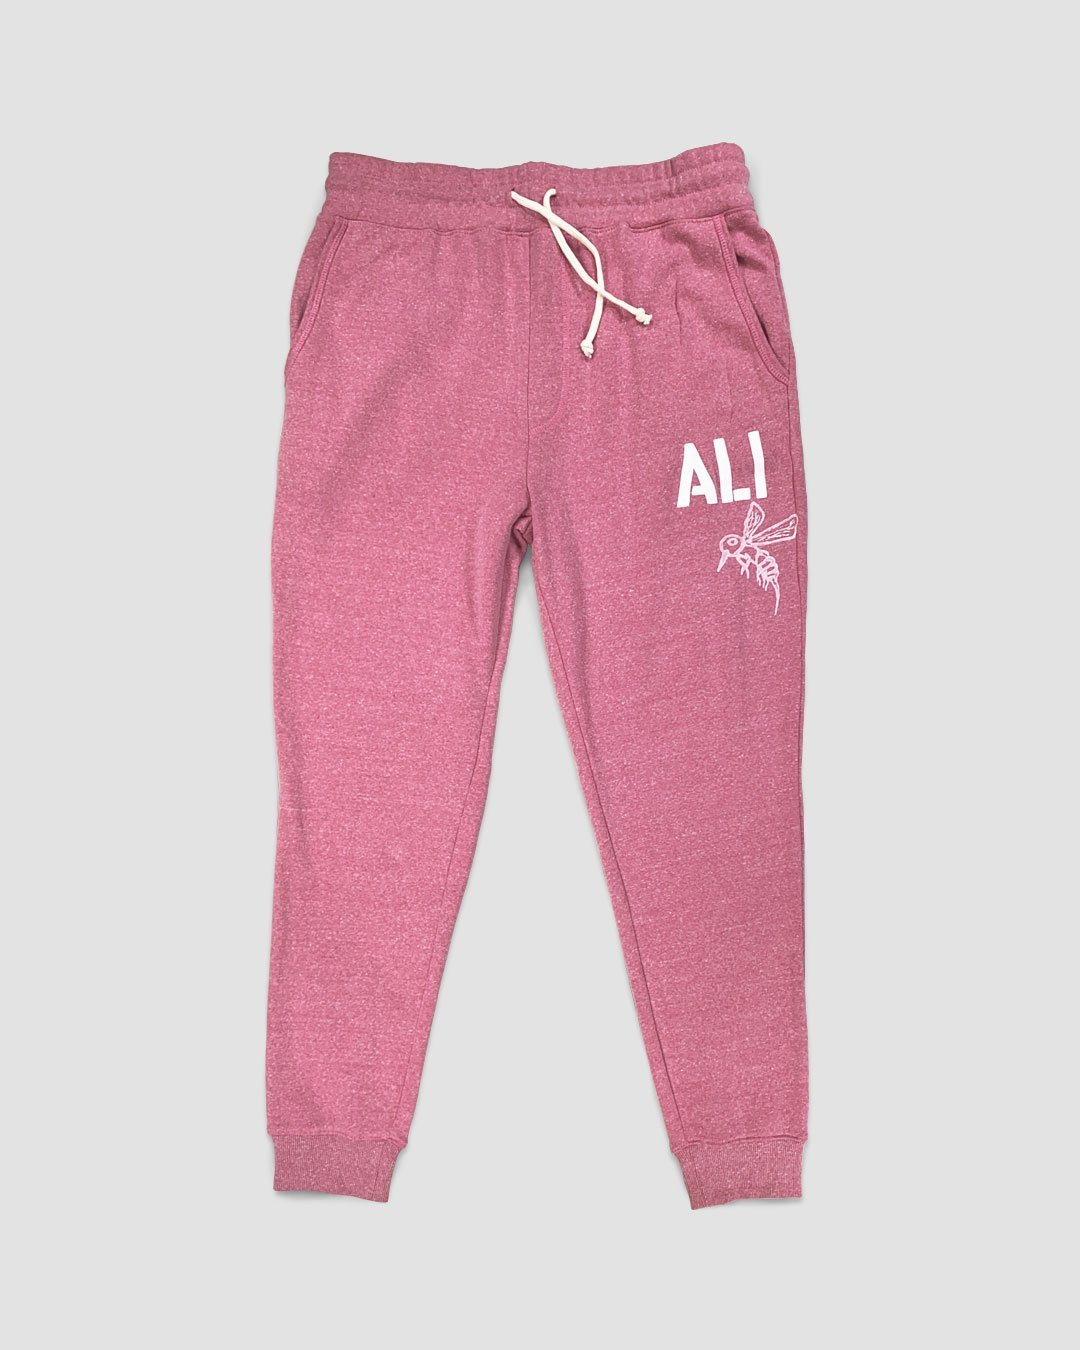 Ali Stinger Essential Sweatpants - Roots of Inc dba Roots of Fight